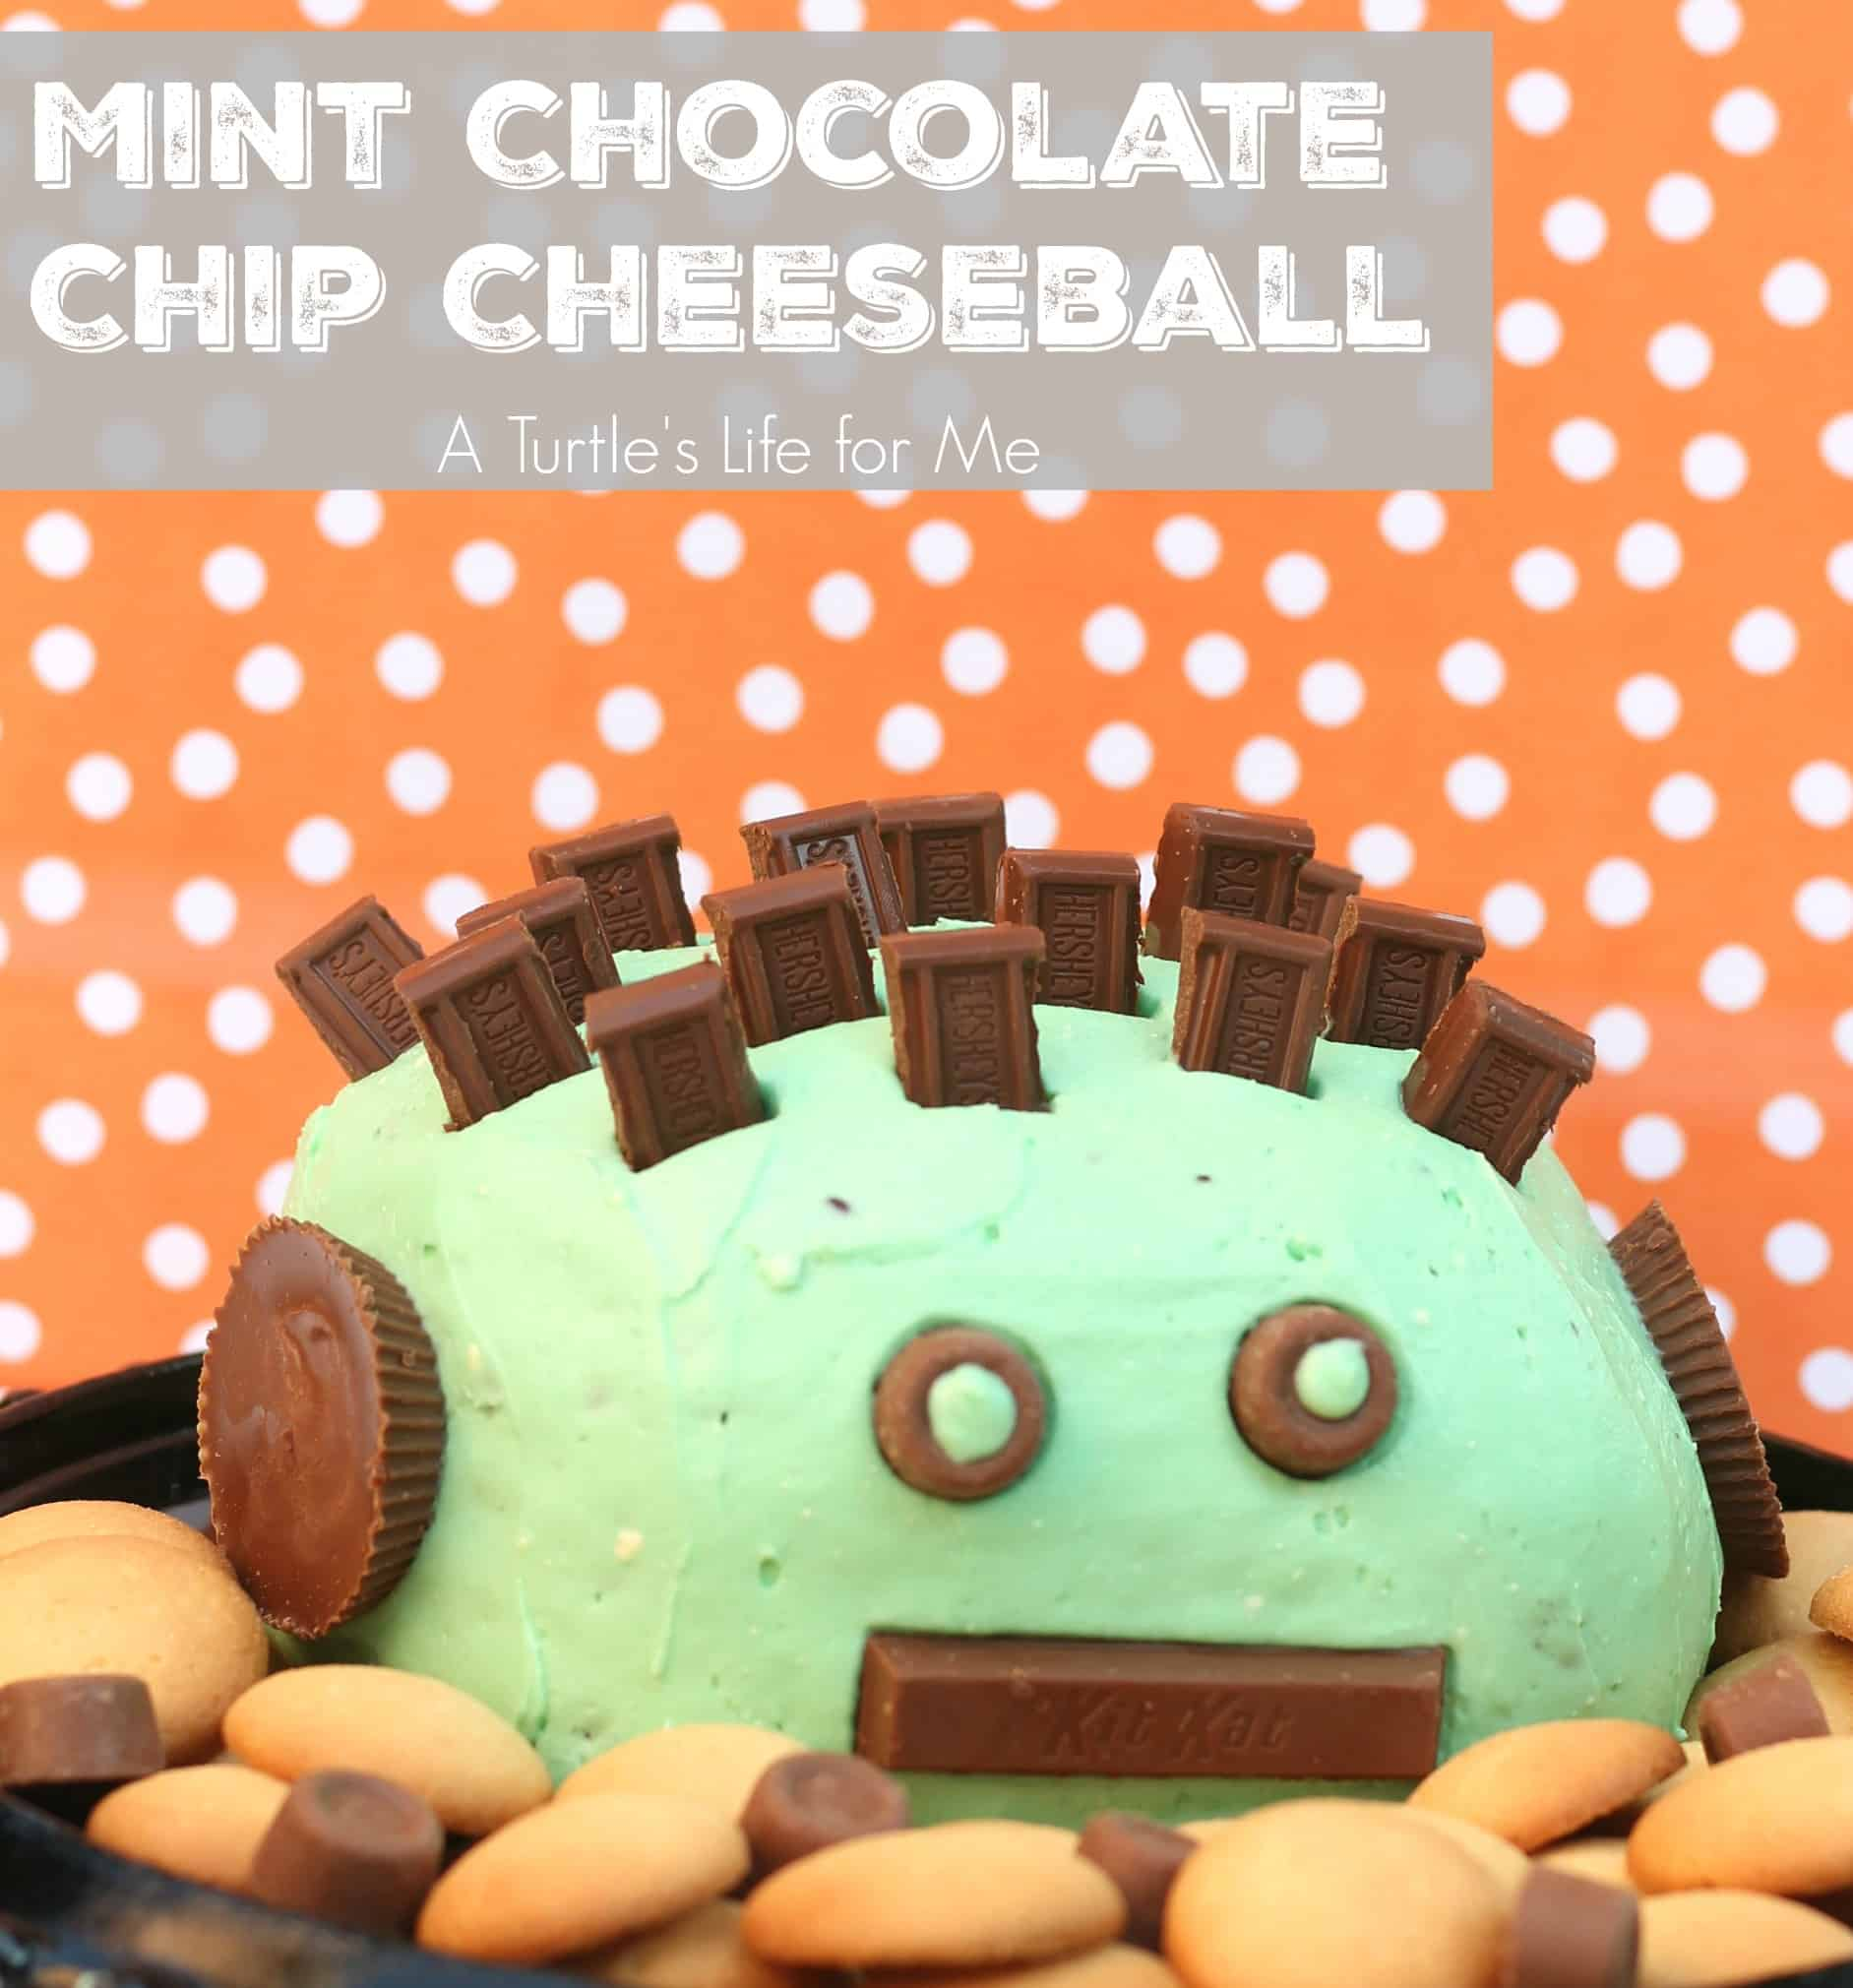 Mint Chocolate Chip Dip for Halloween - A Turtle's Life for Me